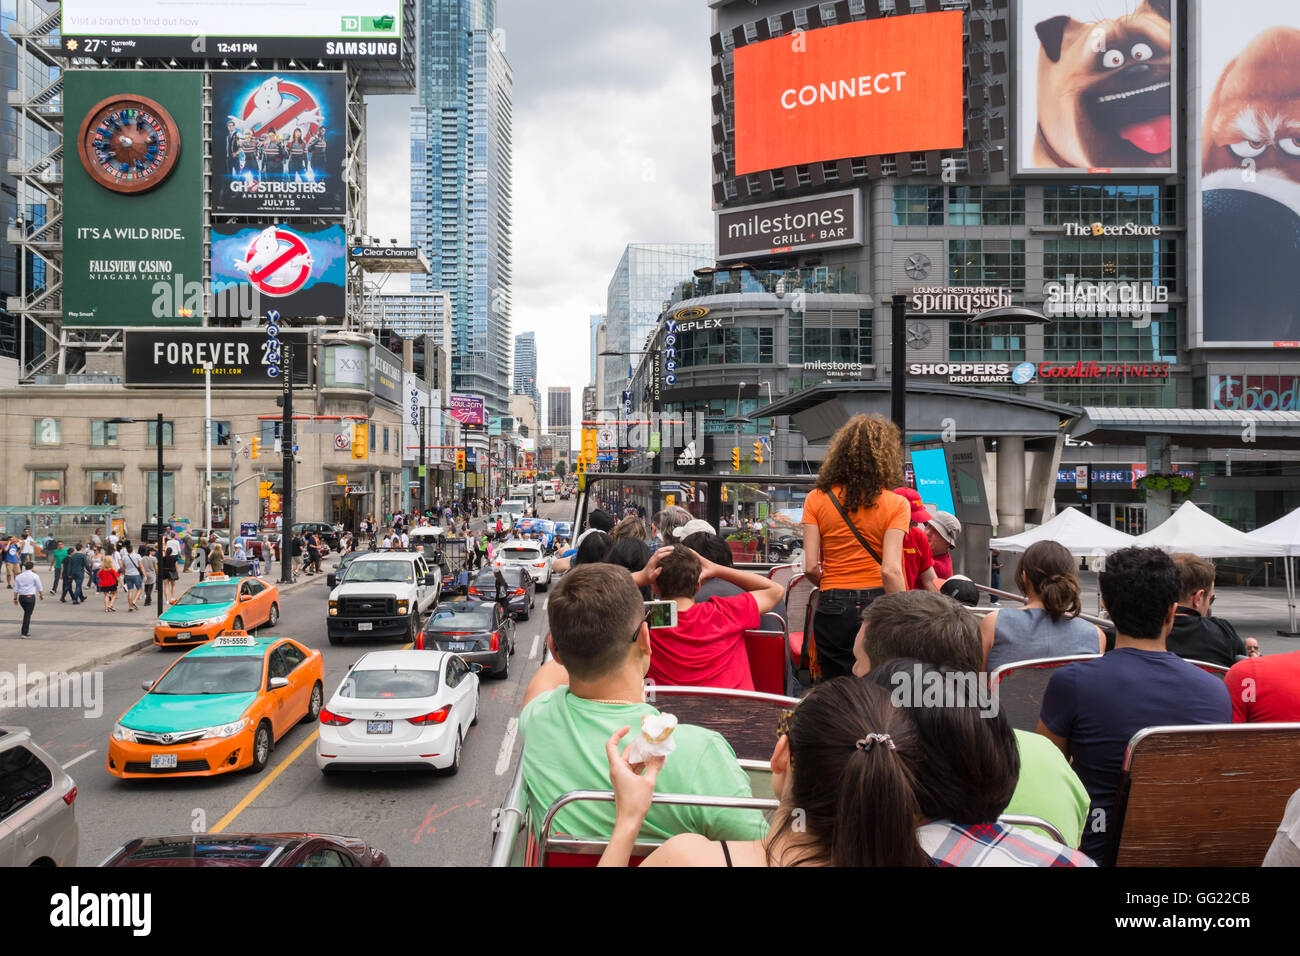 Downtown Toronto -Dundas Square - tourists on hop on hop off bus tour at Yonge-Dundas Square, Toronto, Canada - Stock Image